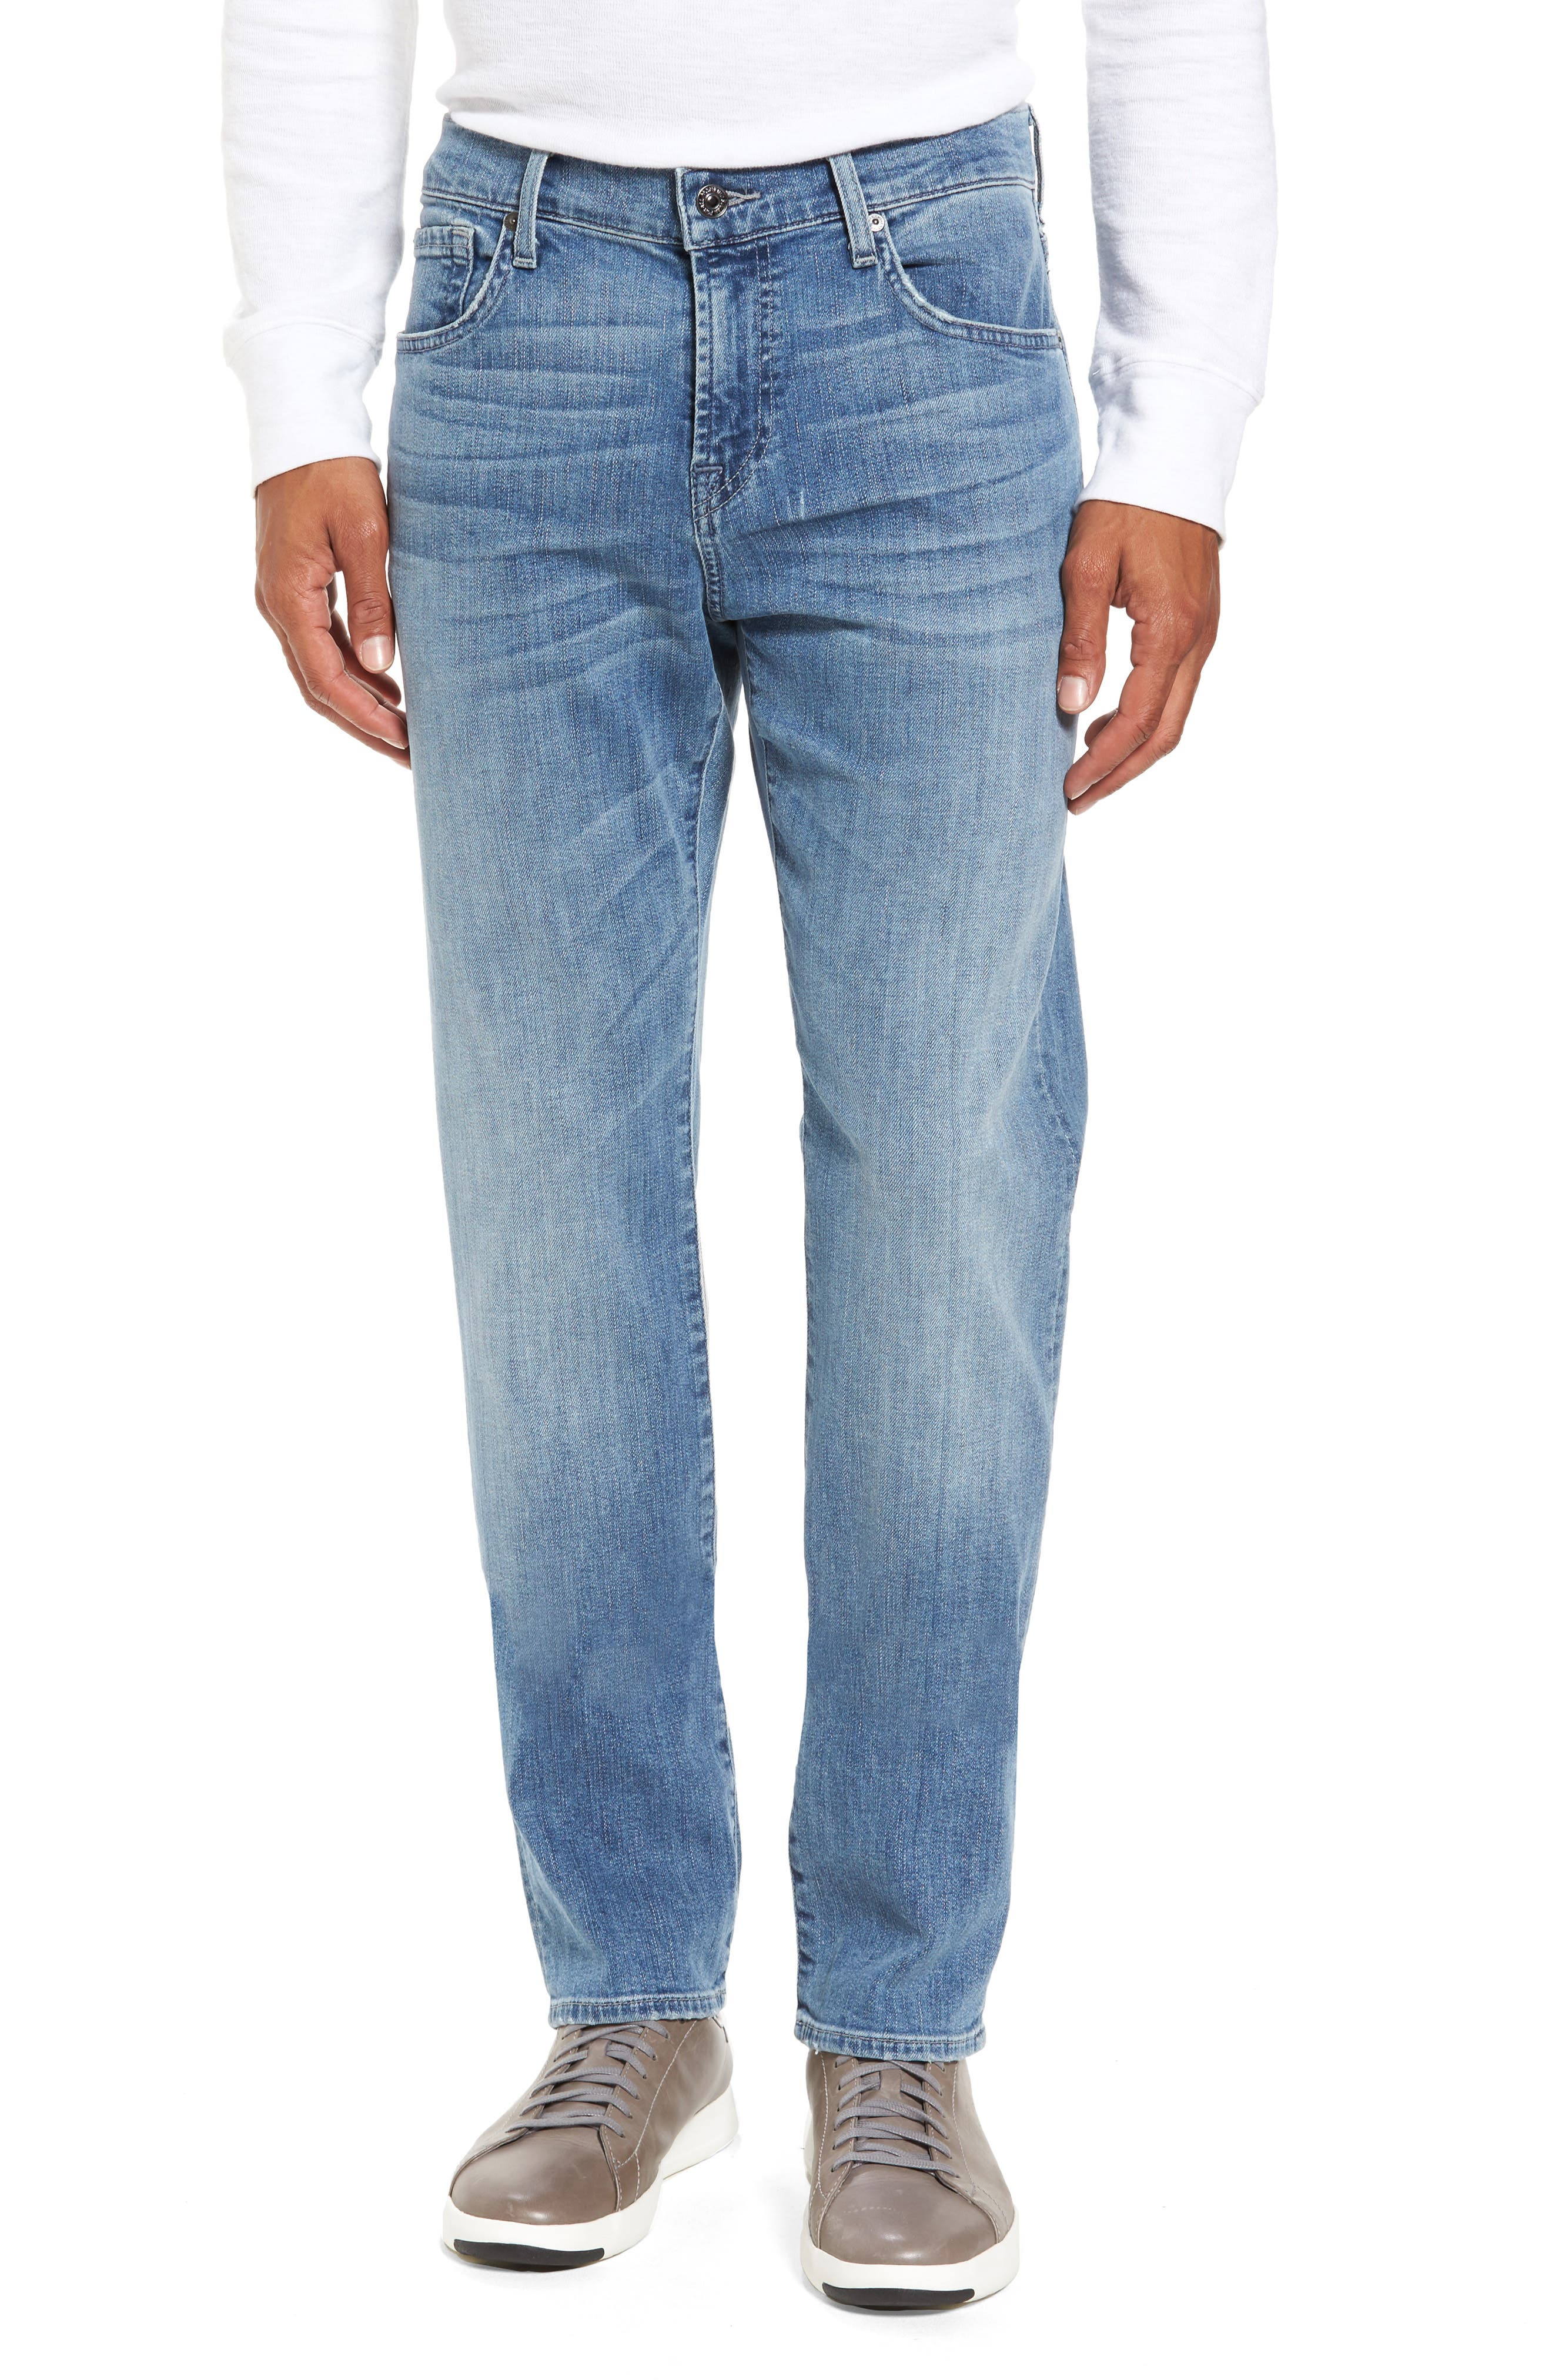 7 For All Mankind Slim Straight Leg Jeans,                         Main,                         color, Homage